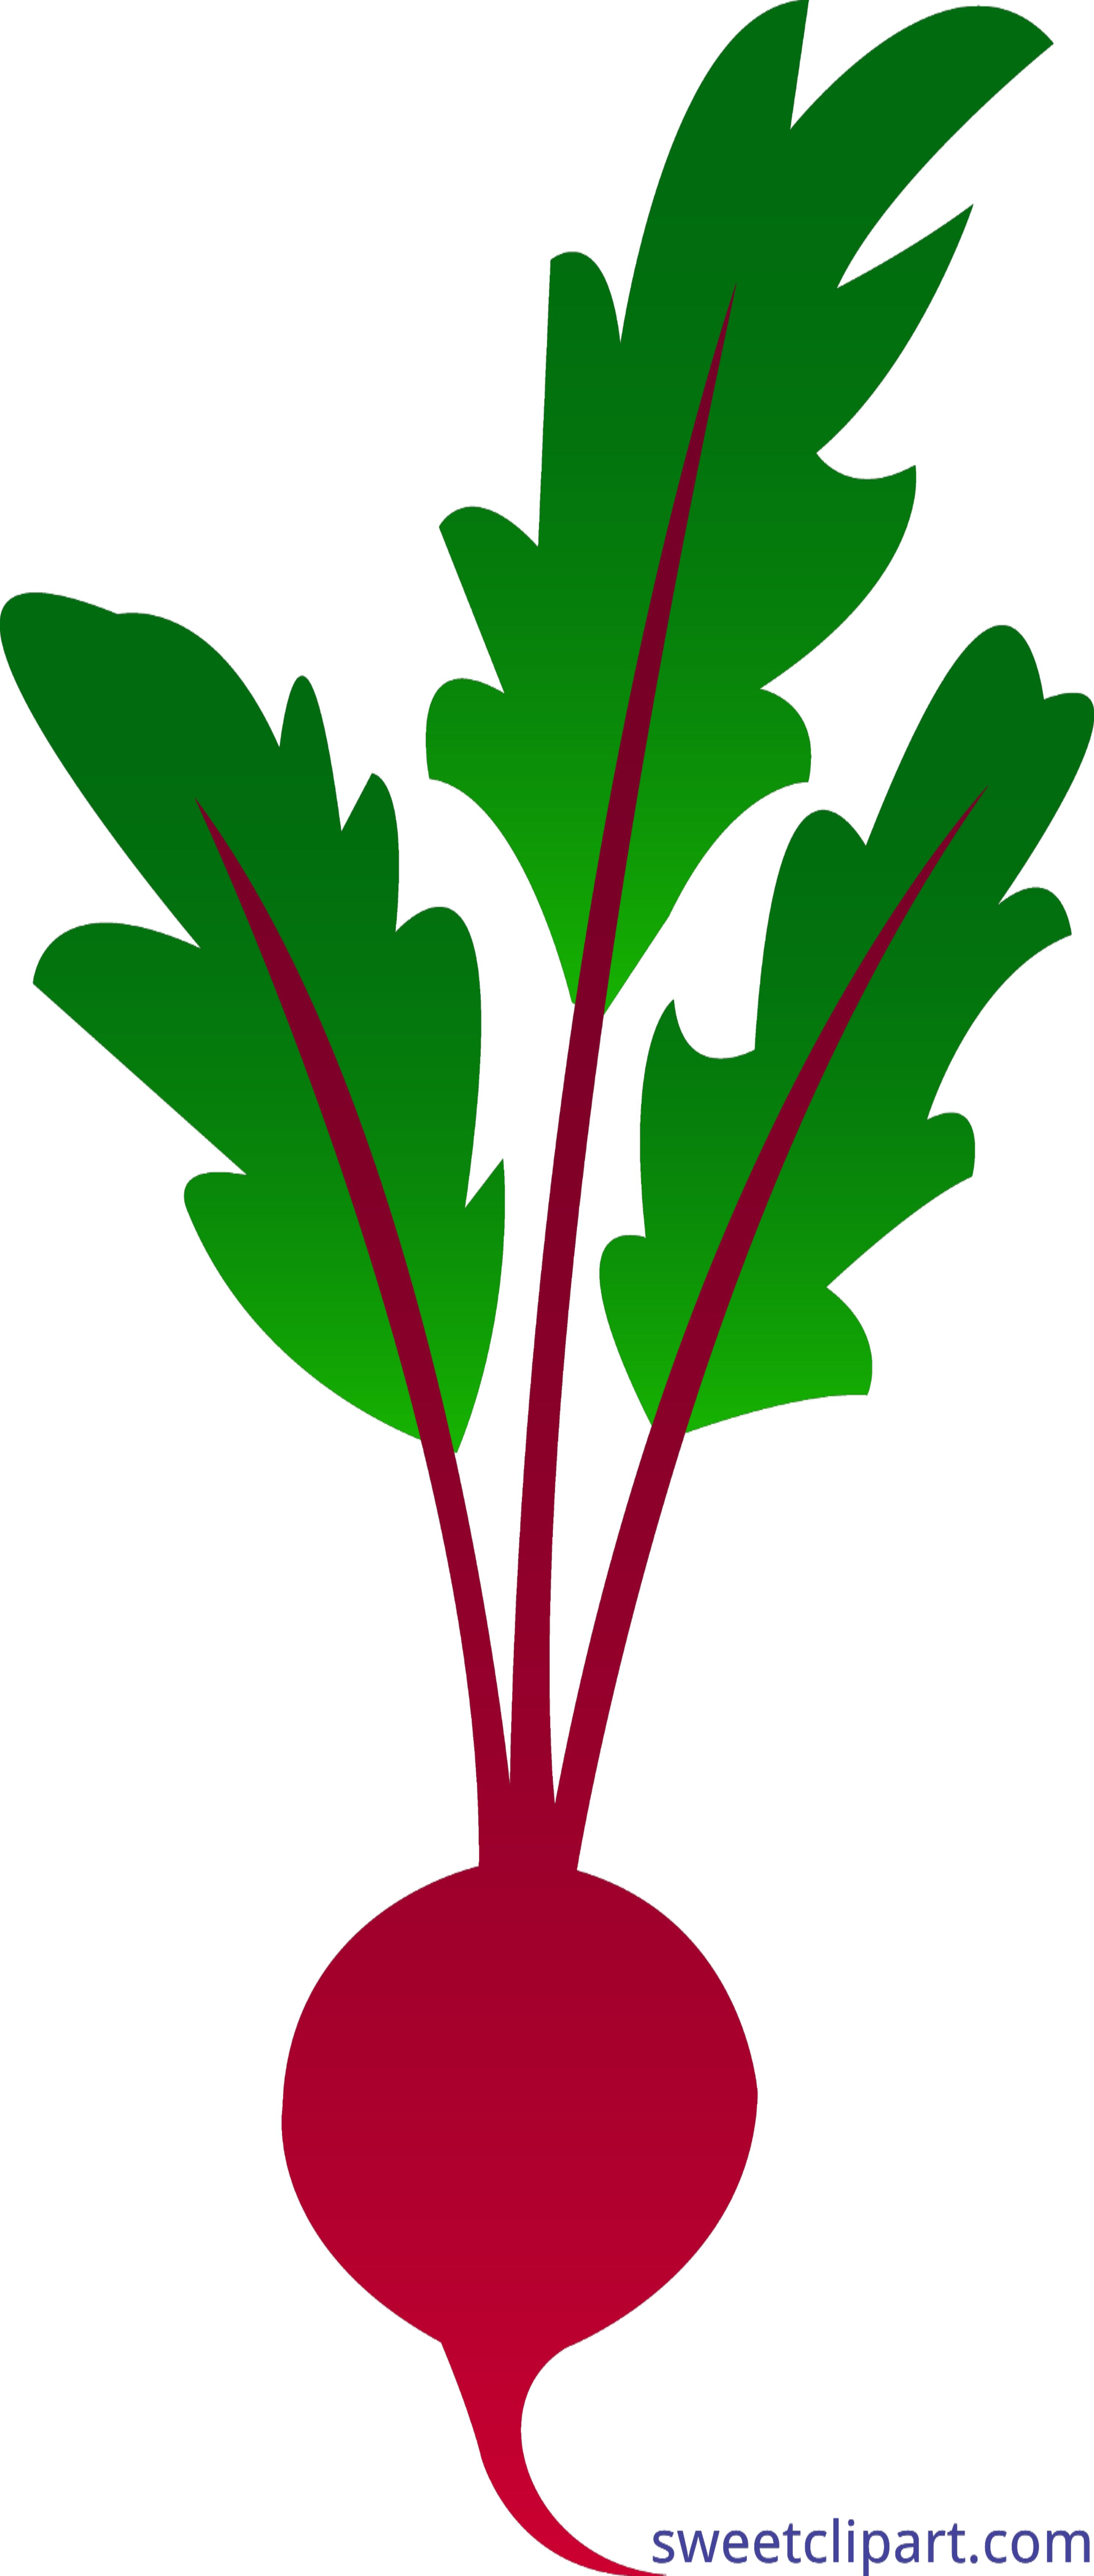 graphic stock Beet encode clipart to. Beets drawing logo beats